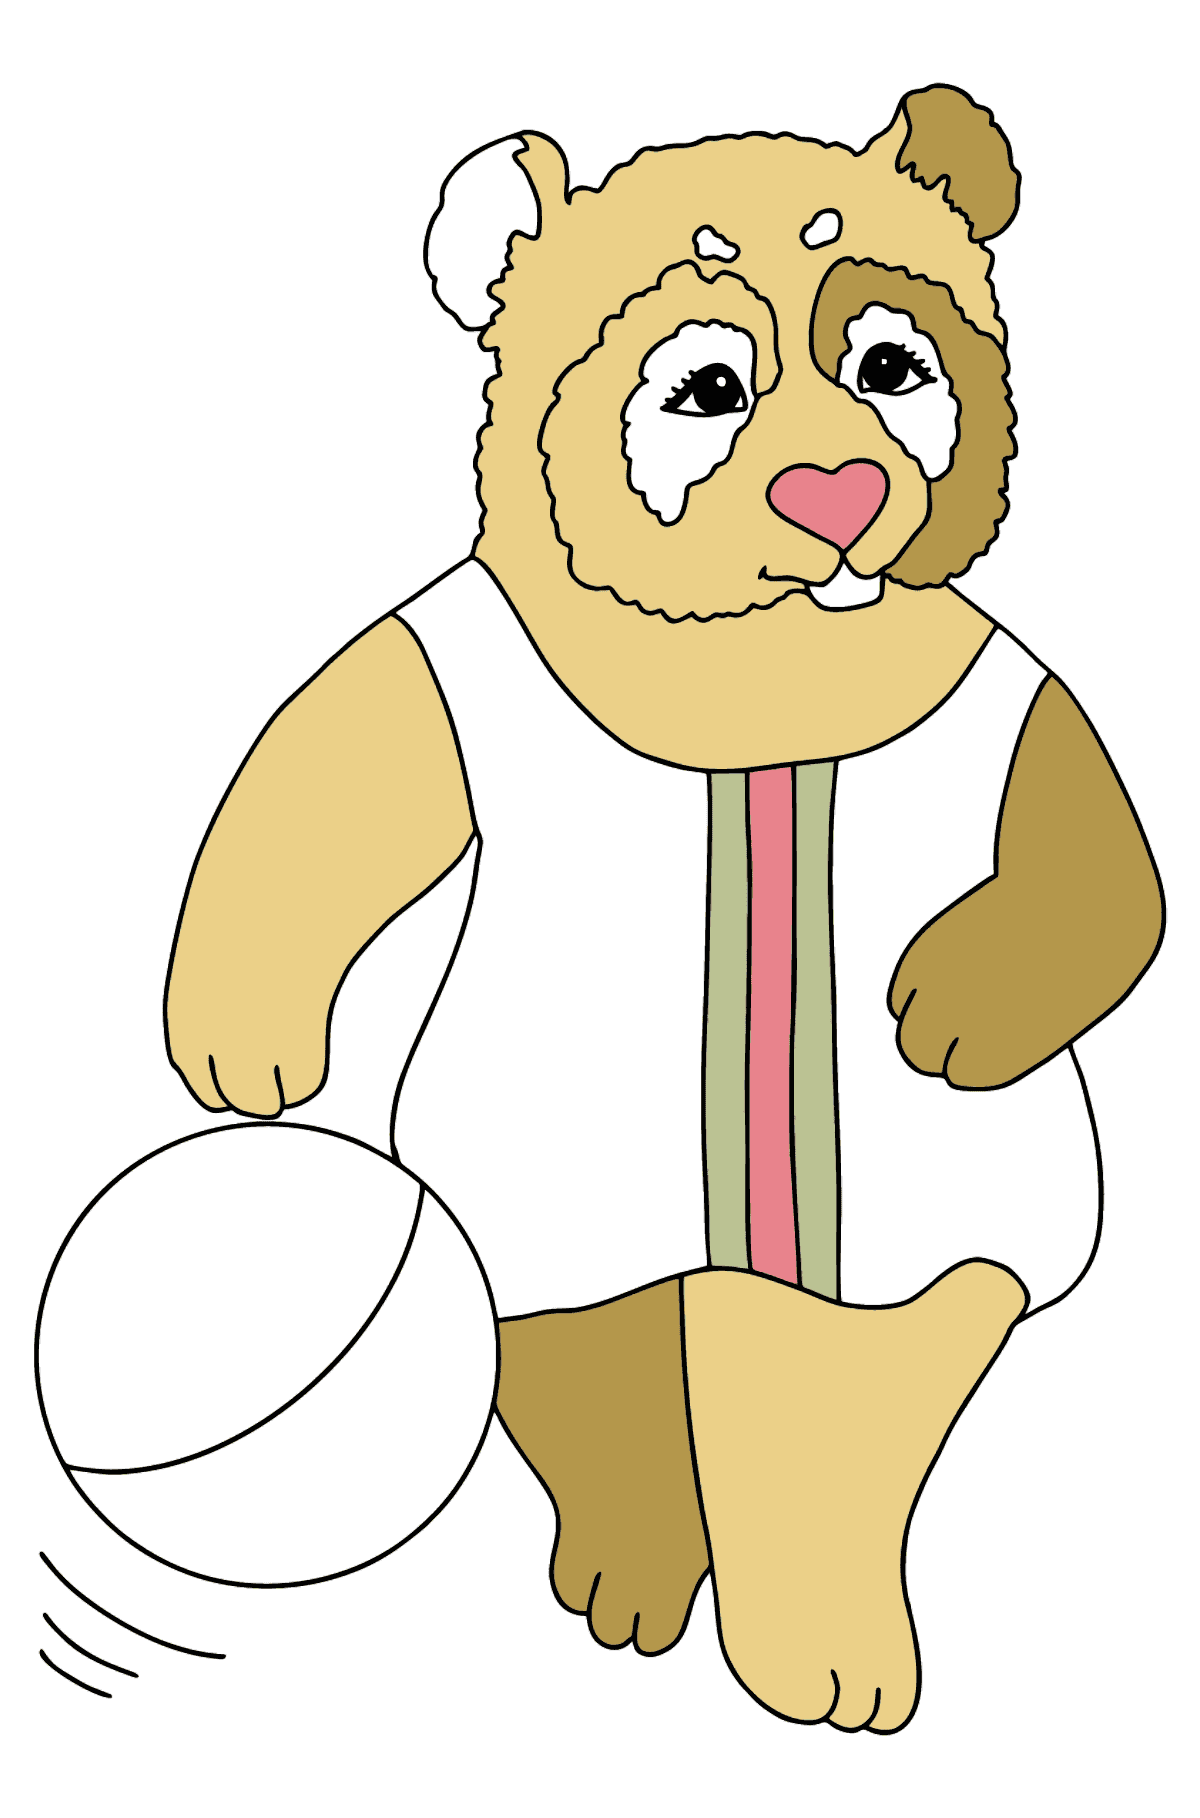 Coloring Picture - A Panda is Playing on a Beach - Coloring Pages for Kids